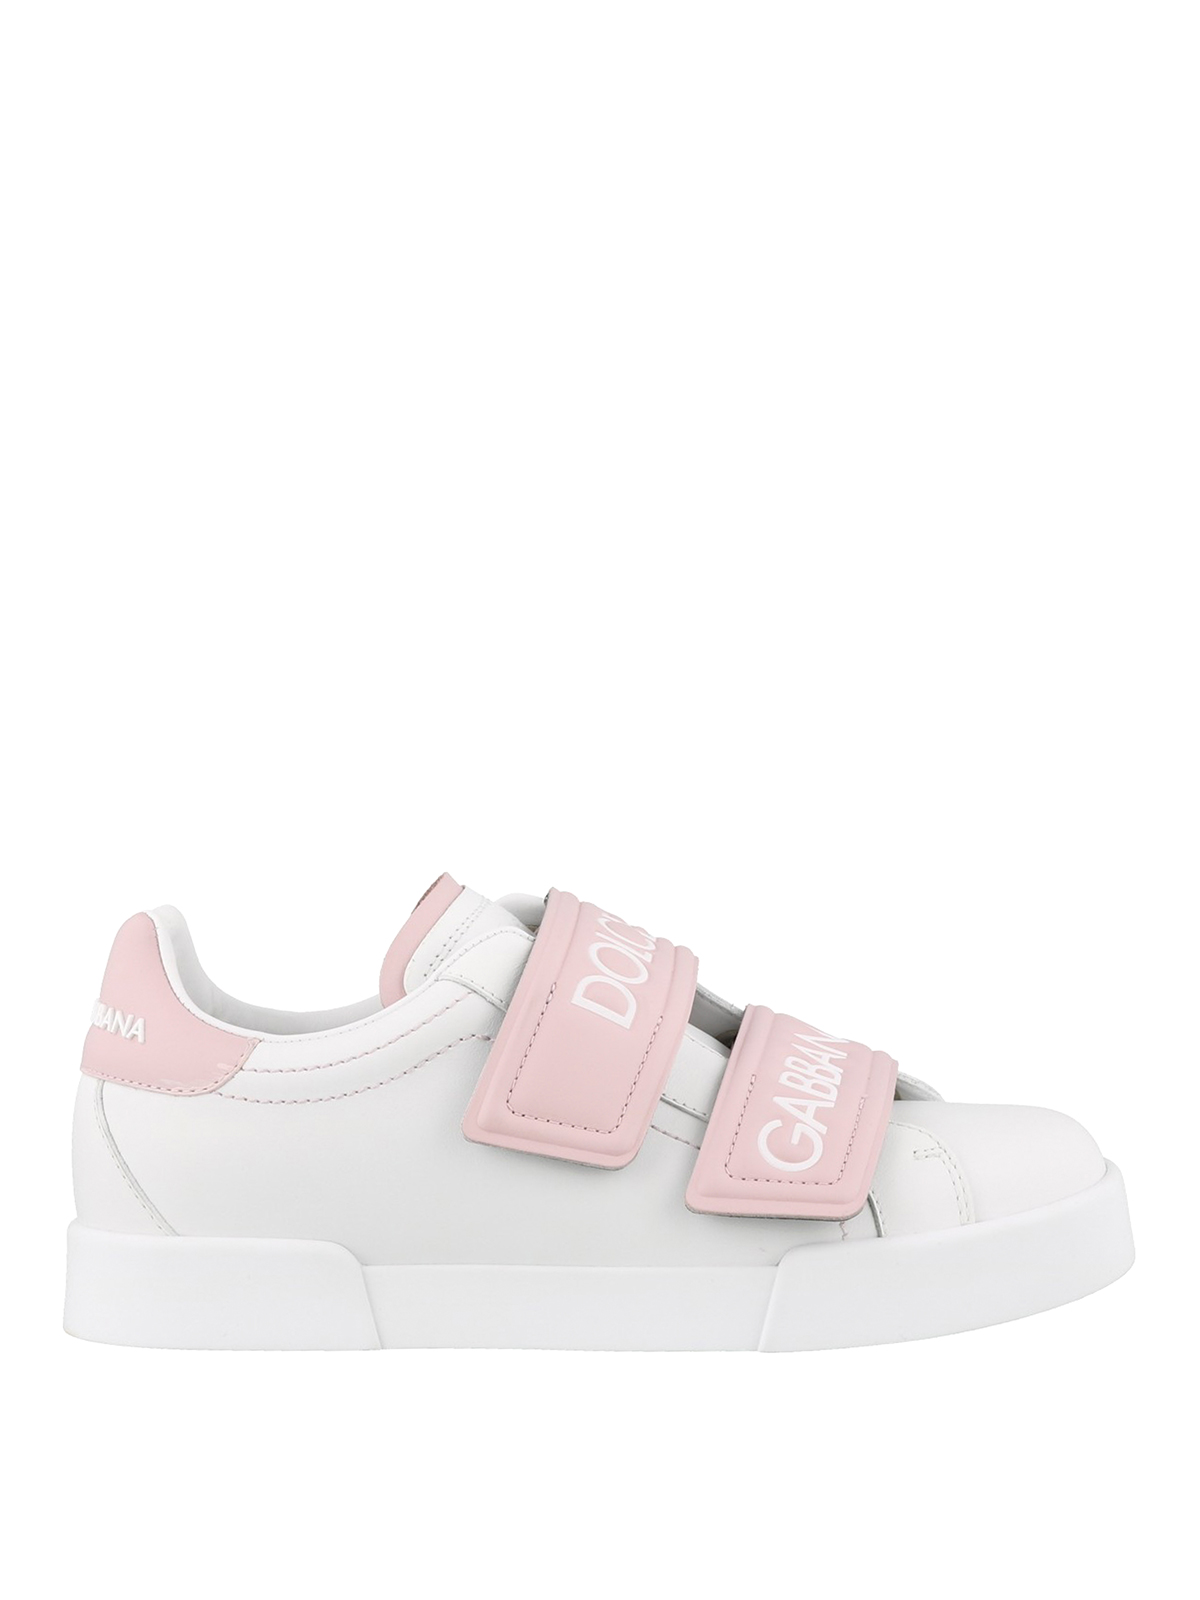 White and pink sneakers with velcro